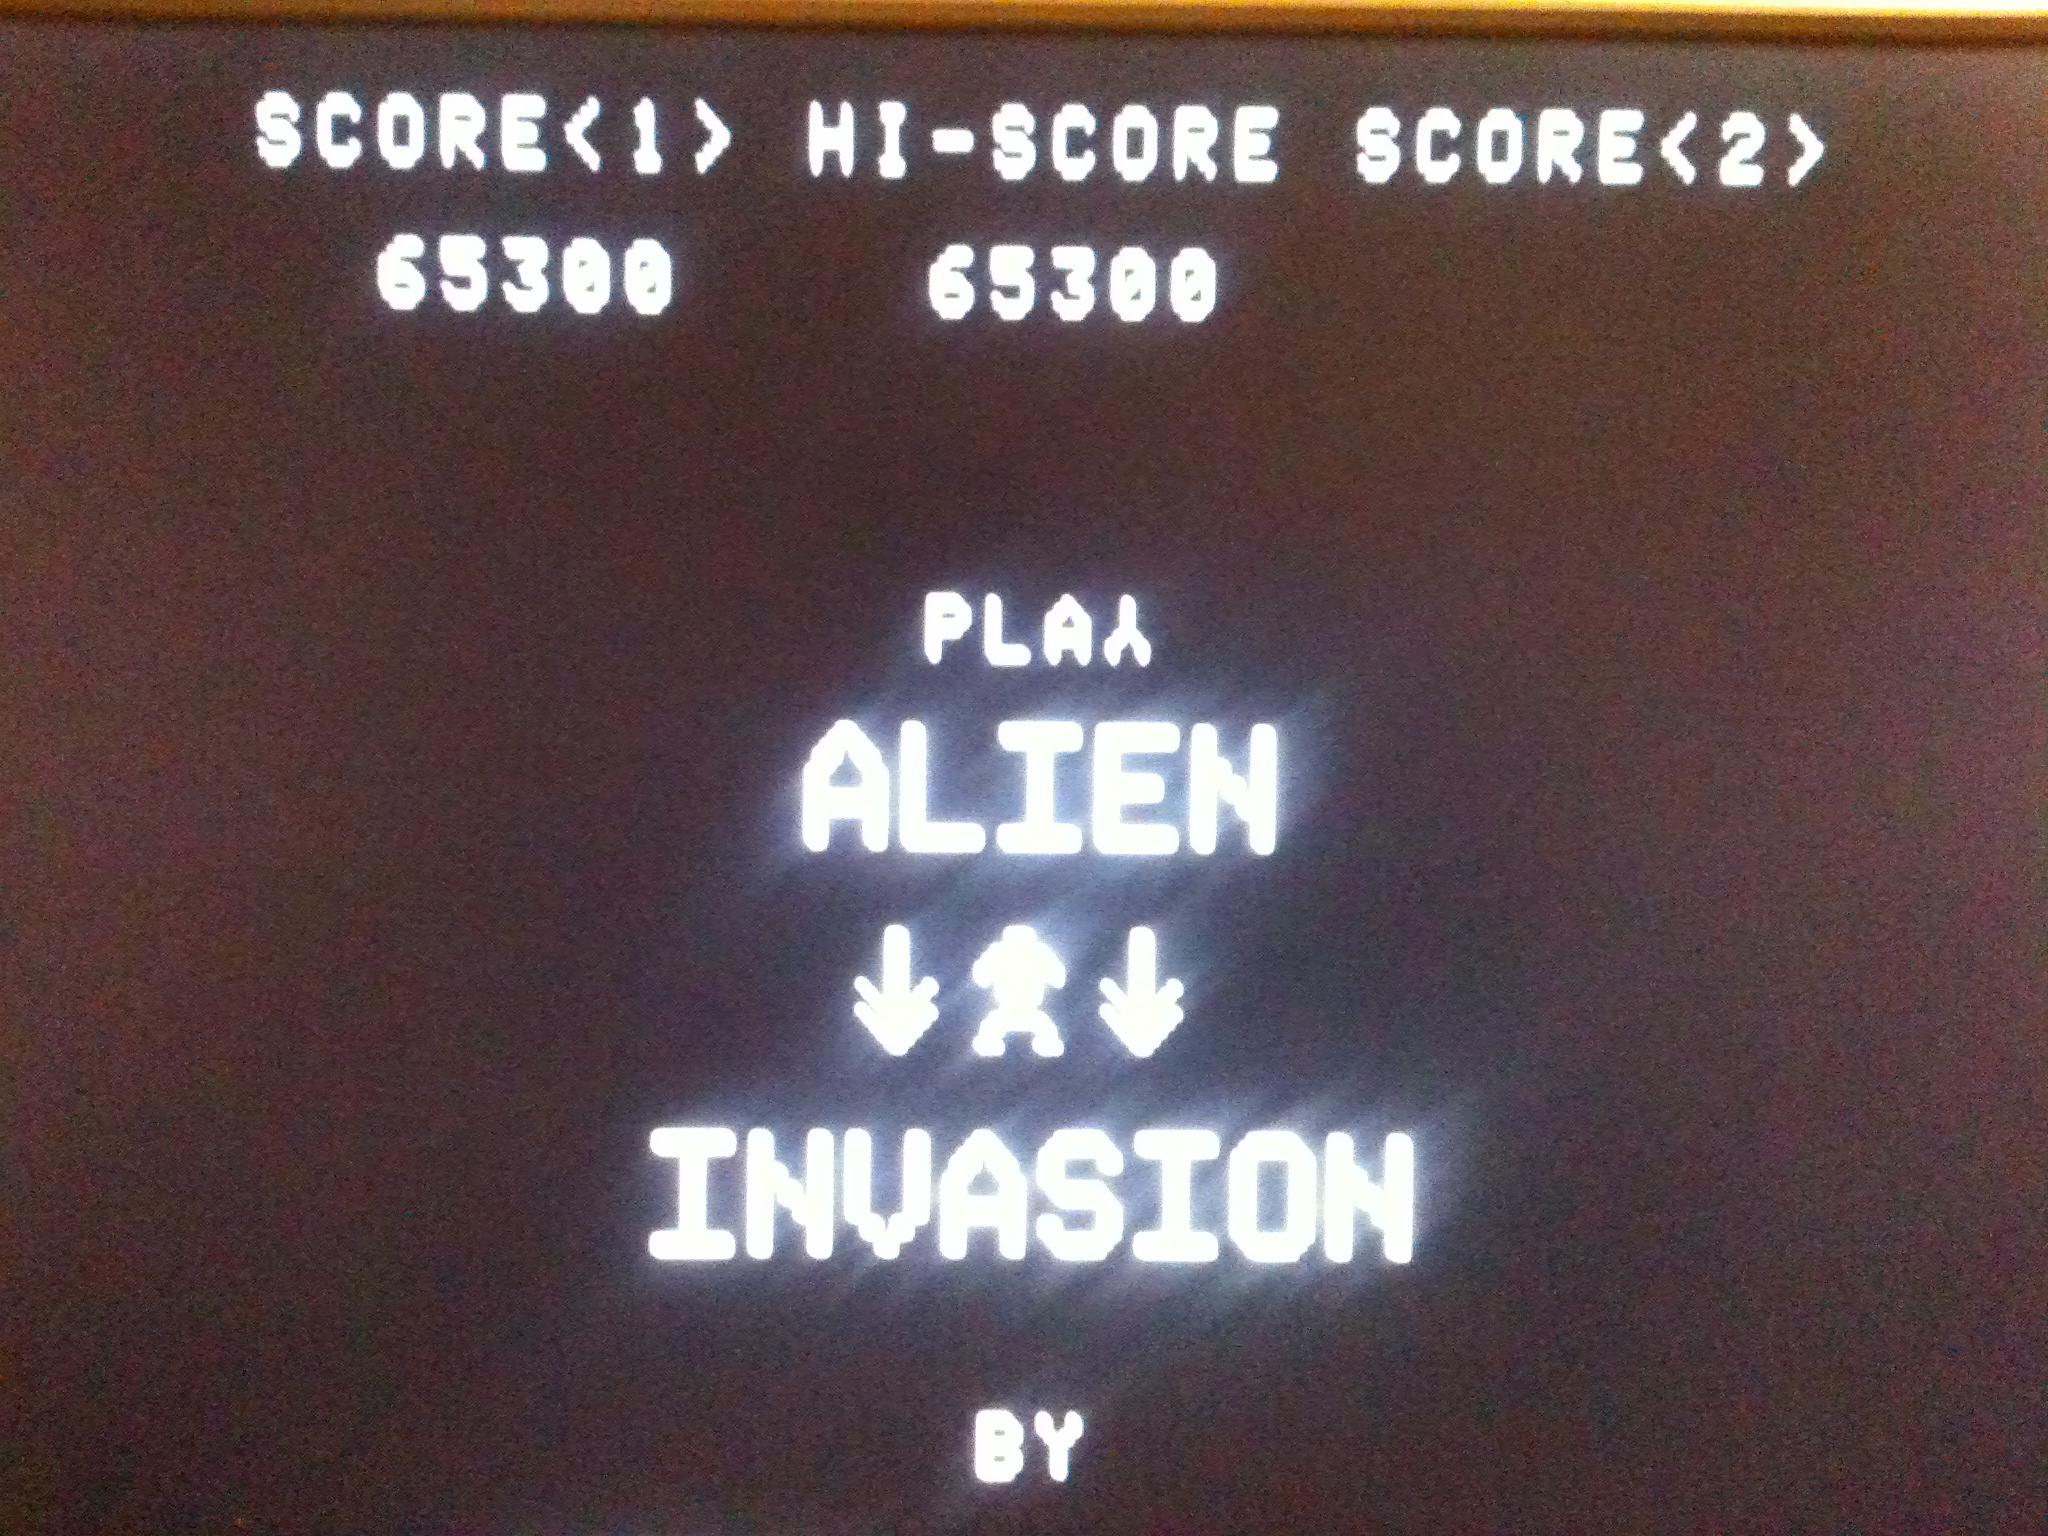 kernzy: Alien Invasion [alieninv] (Arcade Emulated / M.A.M.E.) 65,300 points on 2015-04-22 09:40:58